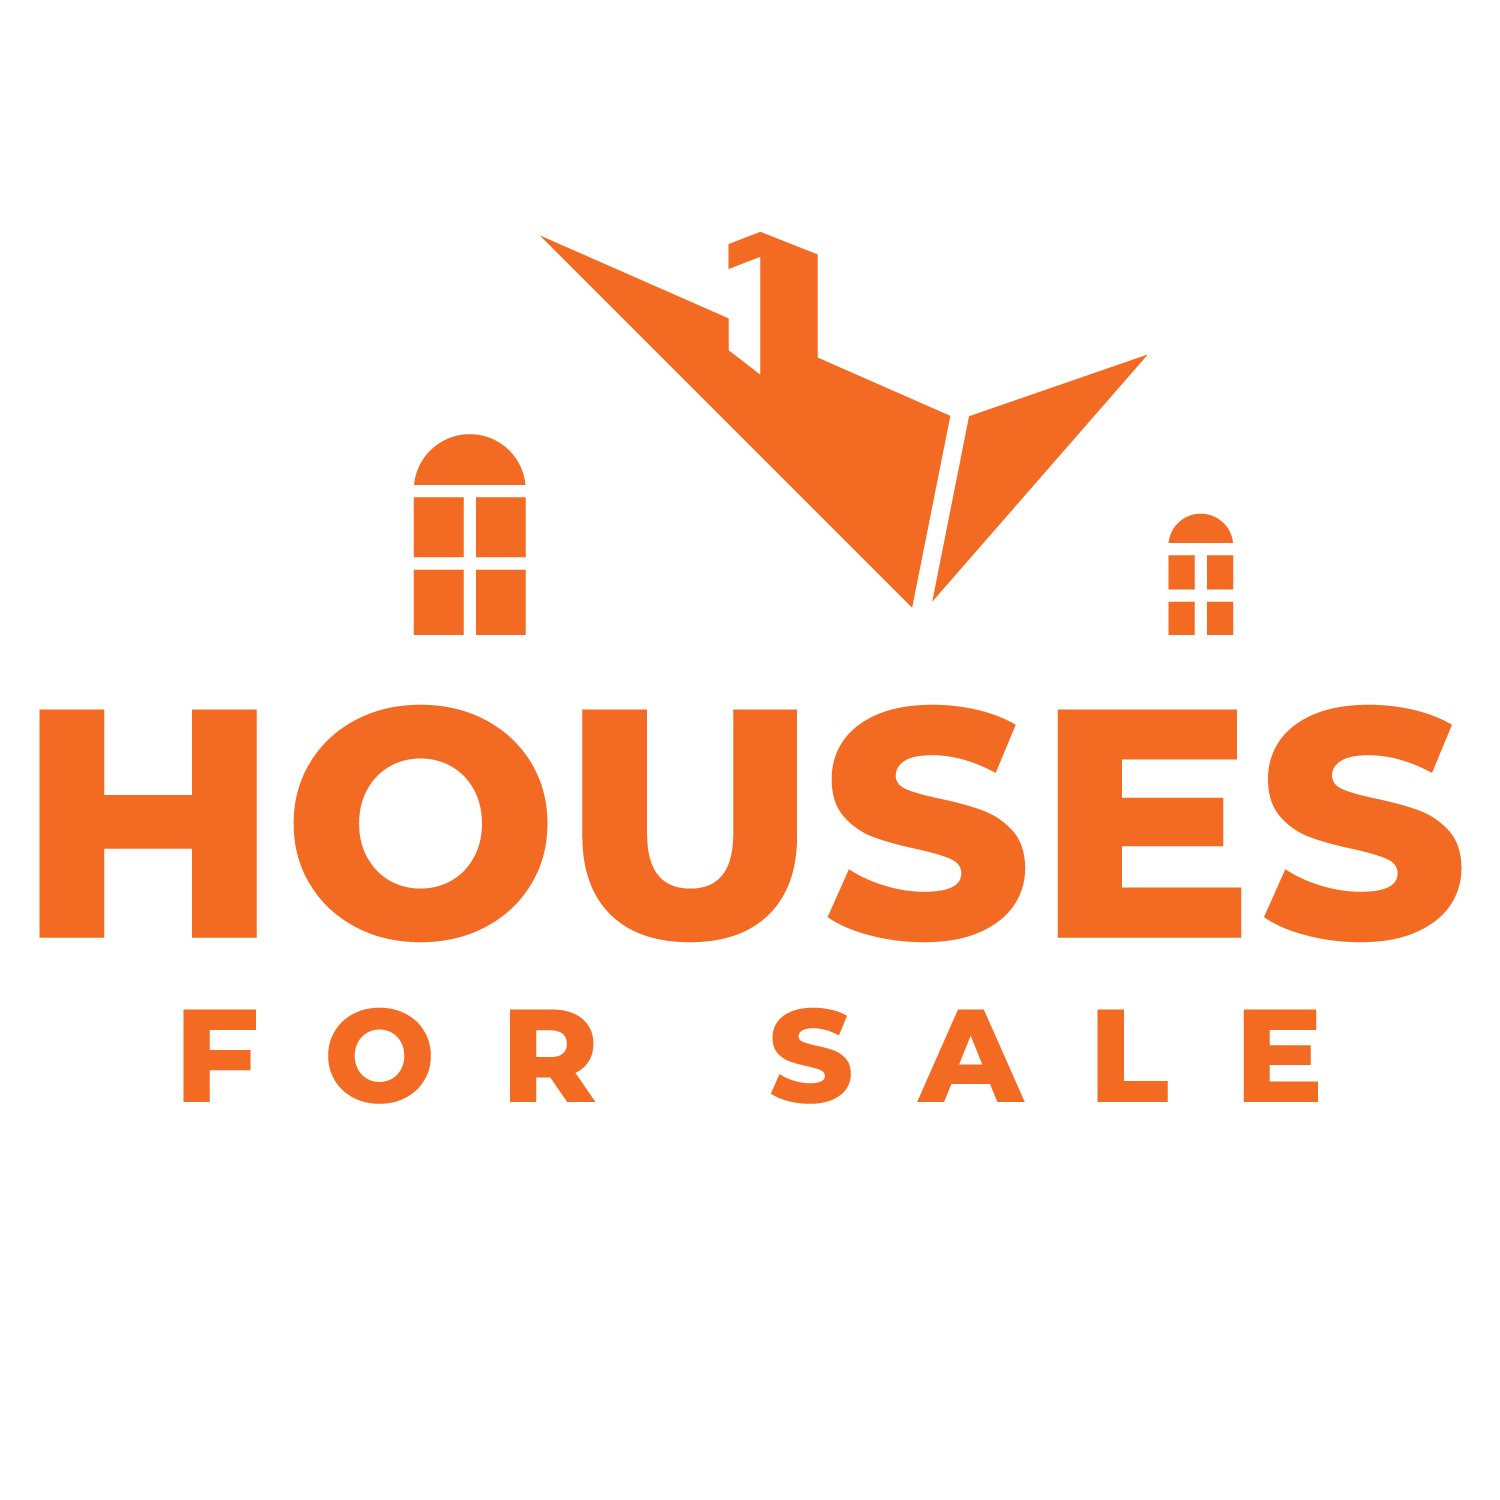 Houses For Sale HQ in Plano, TX